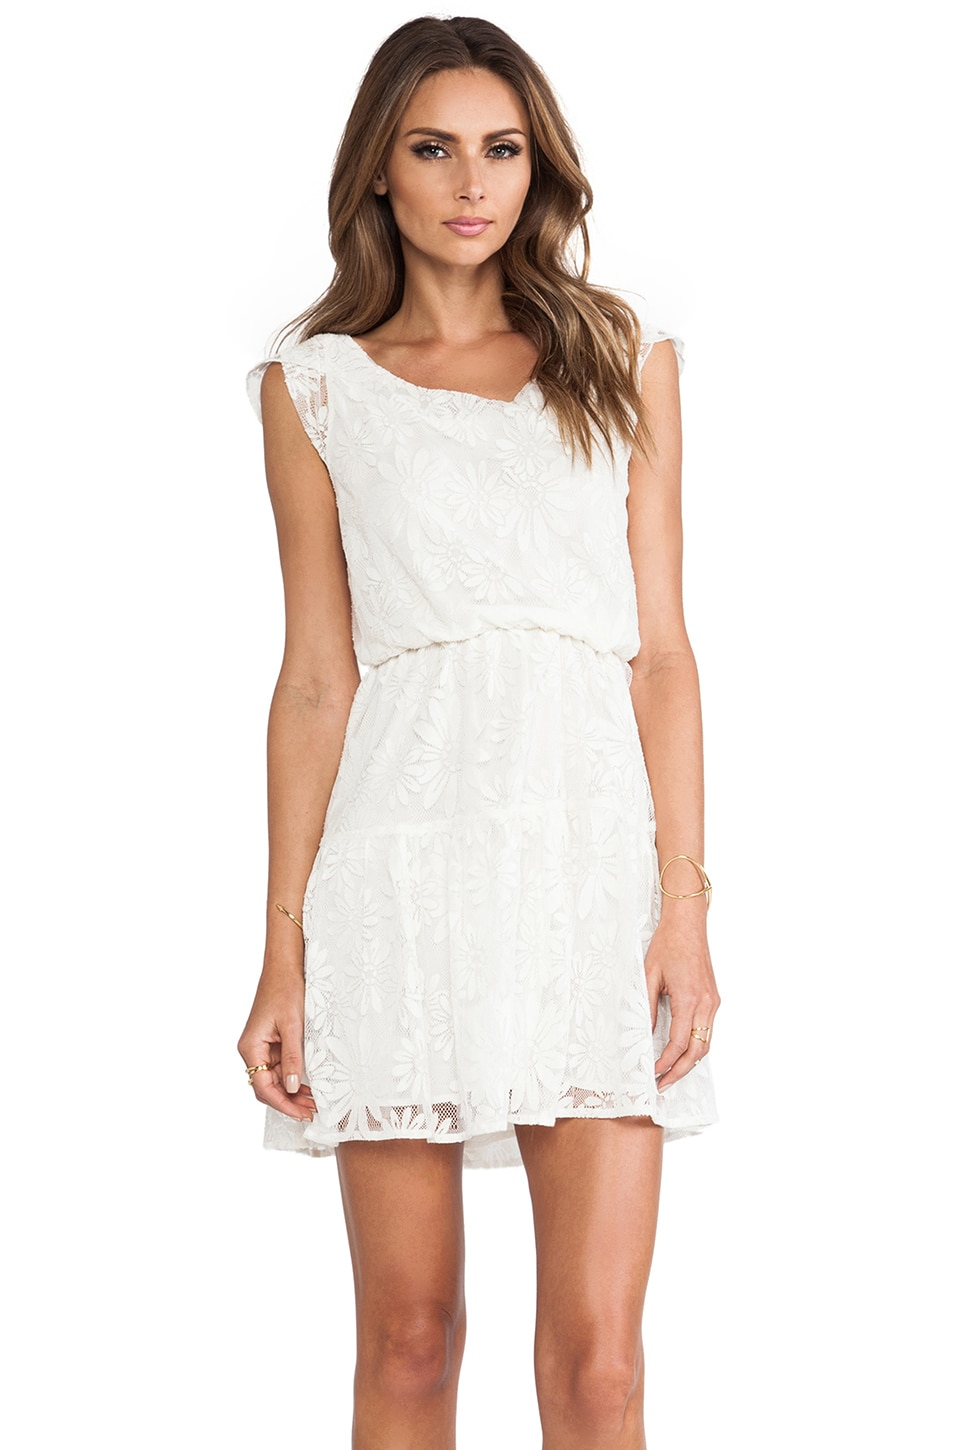 MM Couture by Miss Me Cap Sleeve Lace Dress in White